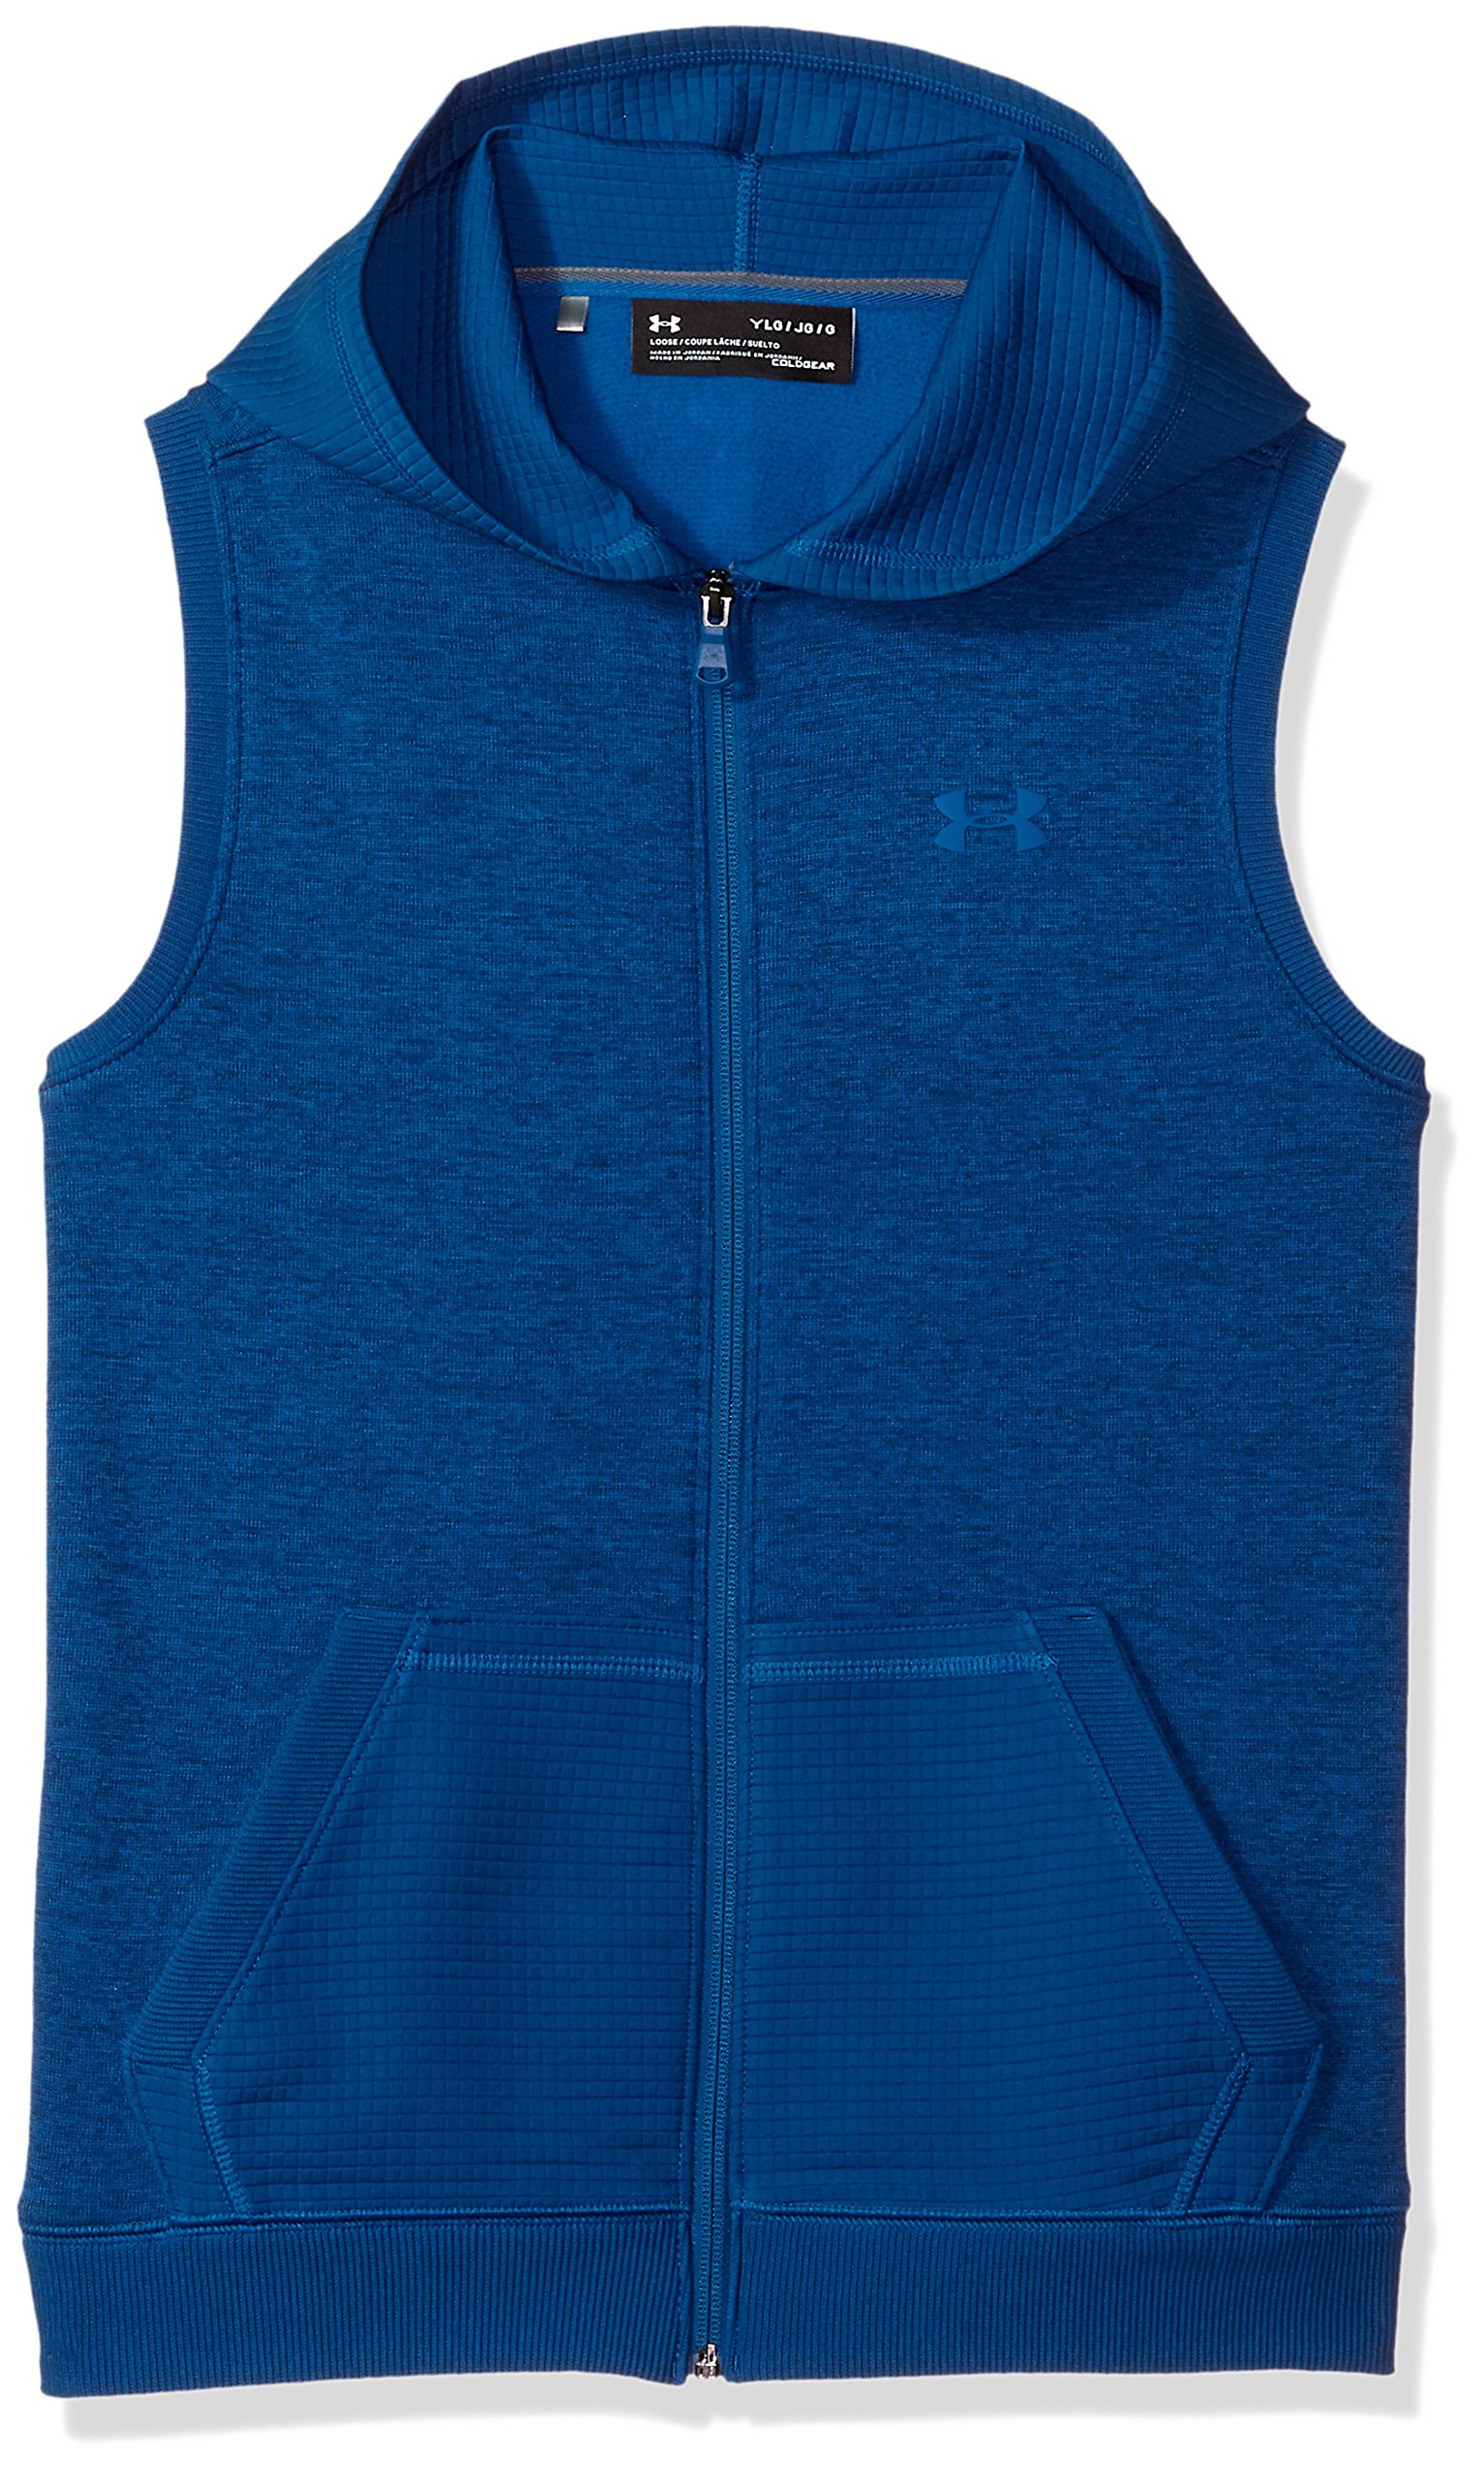 Under Armour Boys' Storm SF Hoodie Vest, Moroccan Blue (487)/Moroccan Blue, Youth X-Small by Under Armour